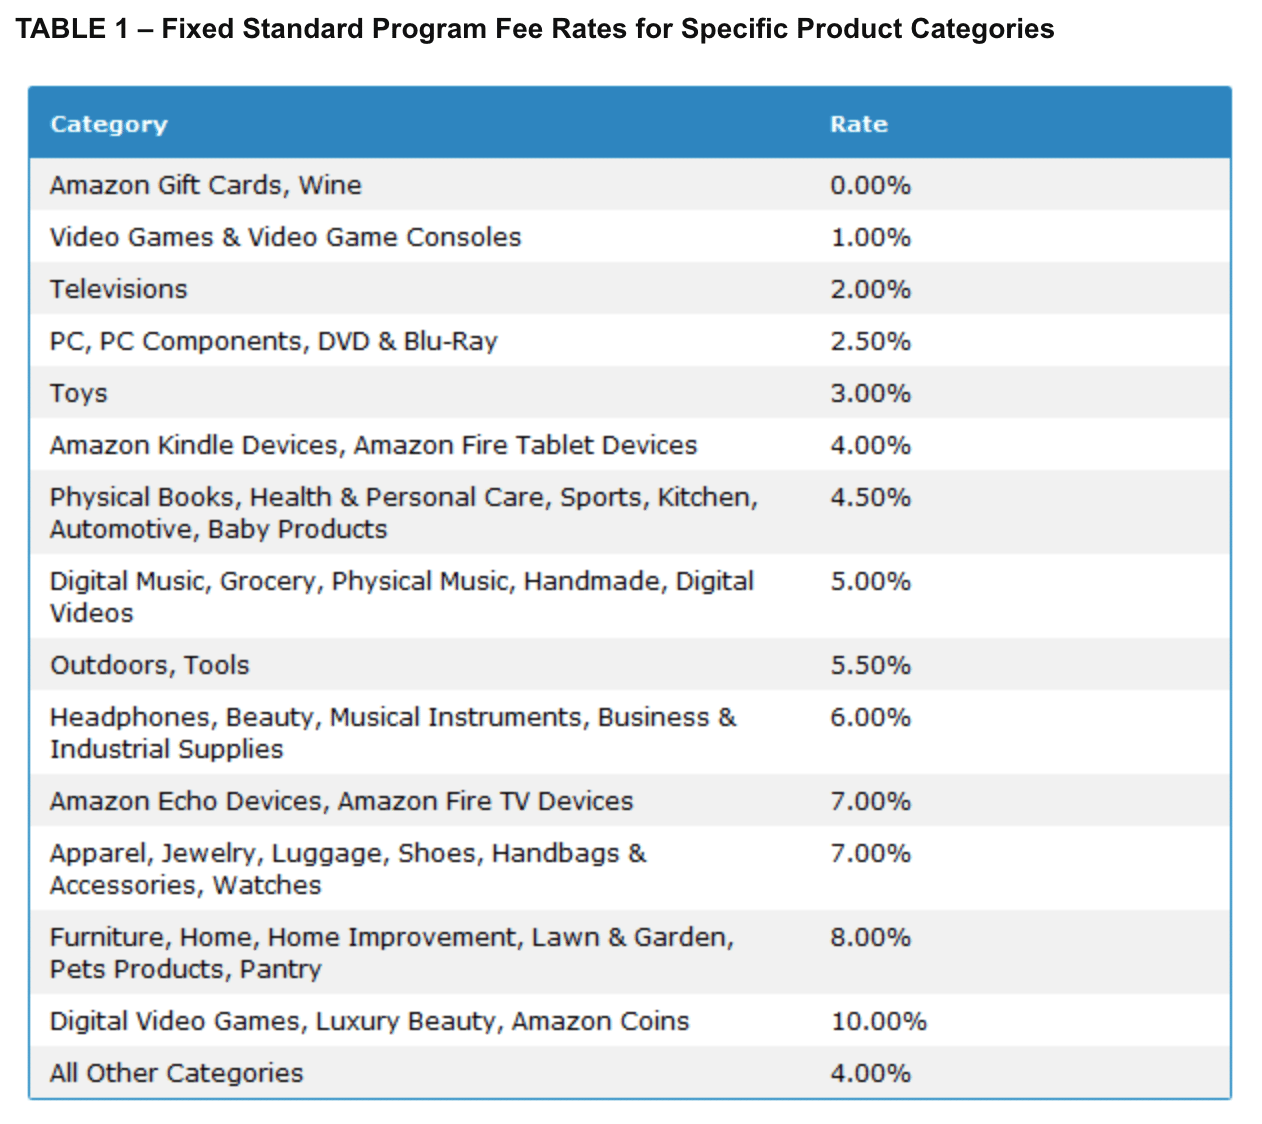 Fixed Standard Program Fee Rates for Specific Product Categories